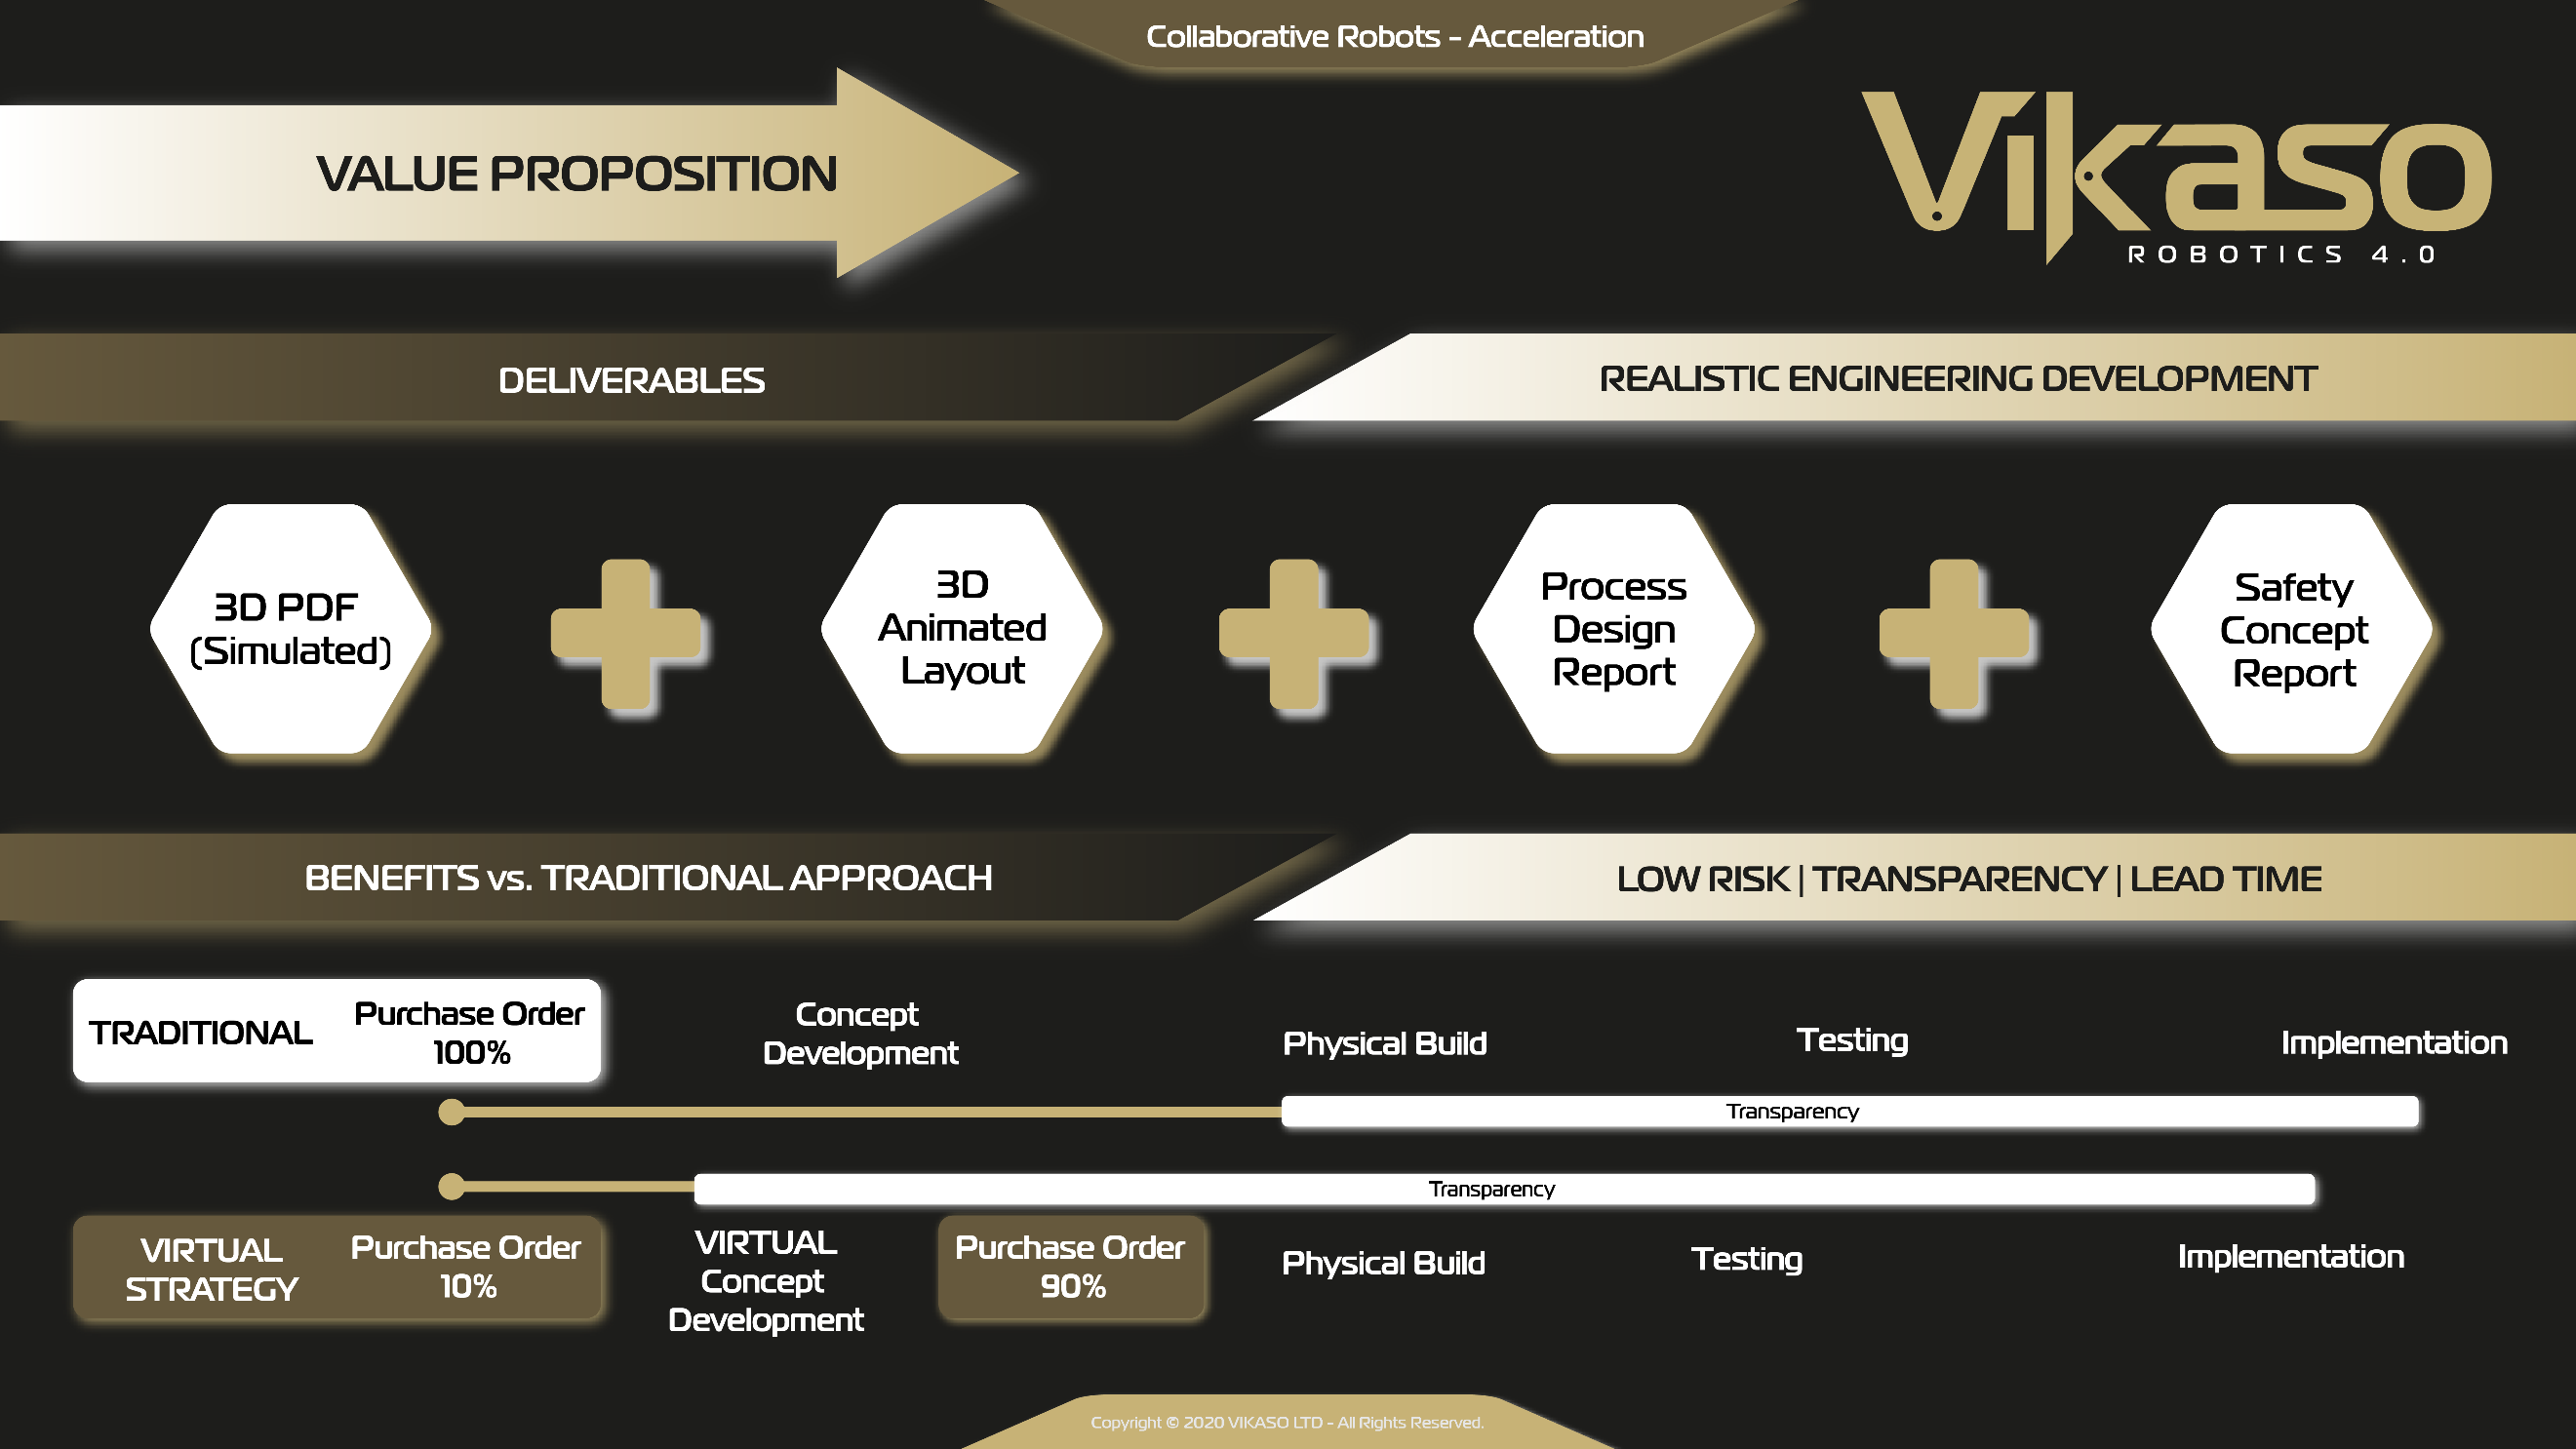 VIKASO - Virtual Strategy - automation cobot